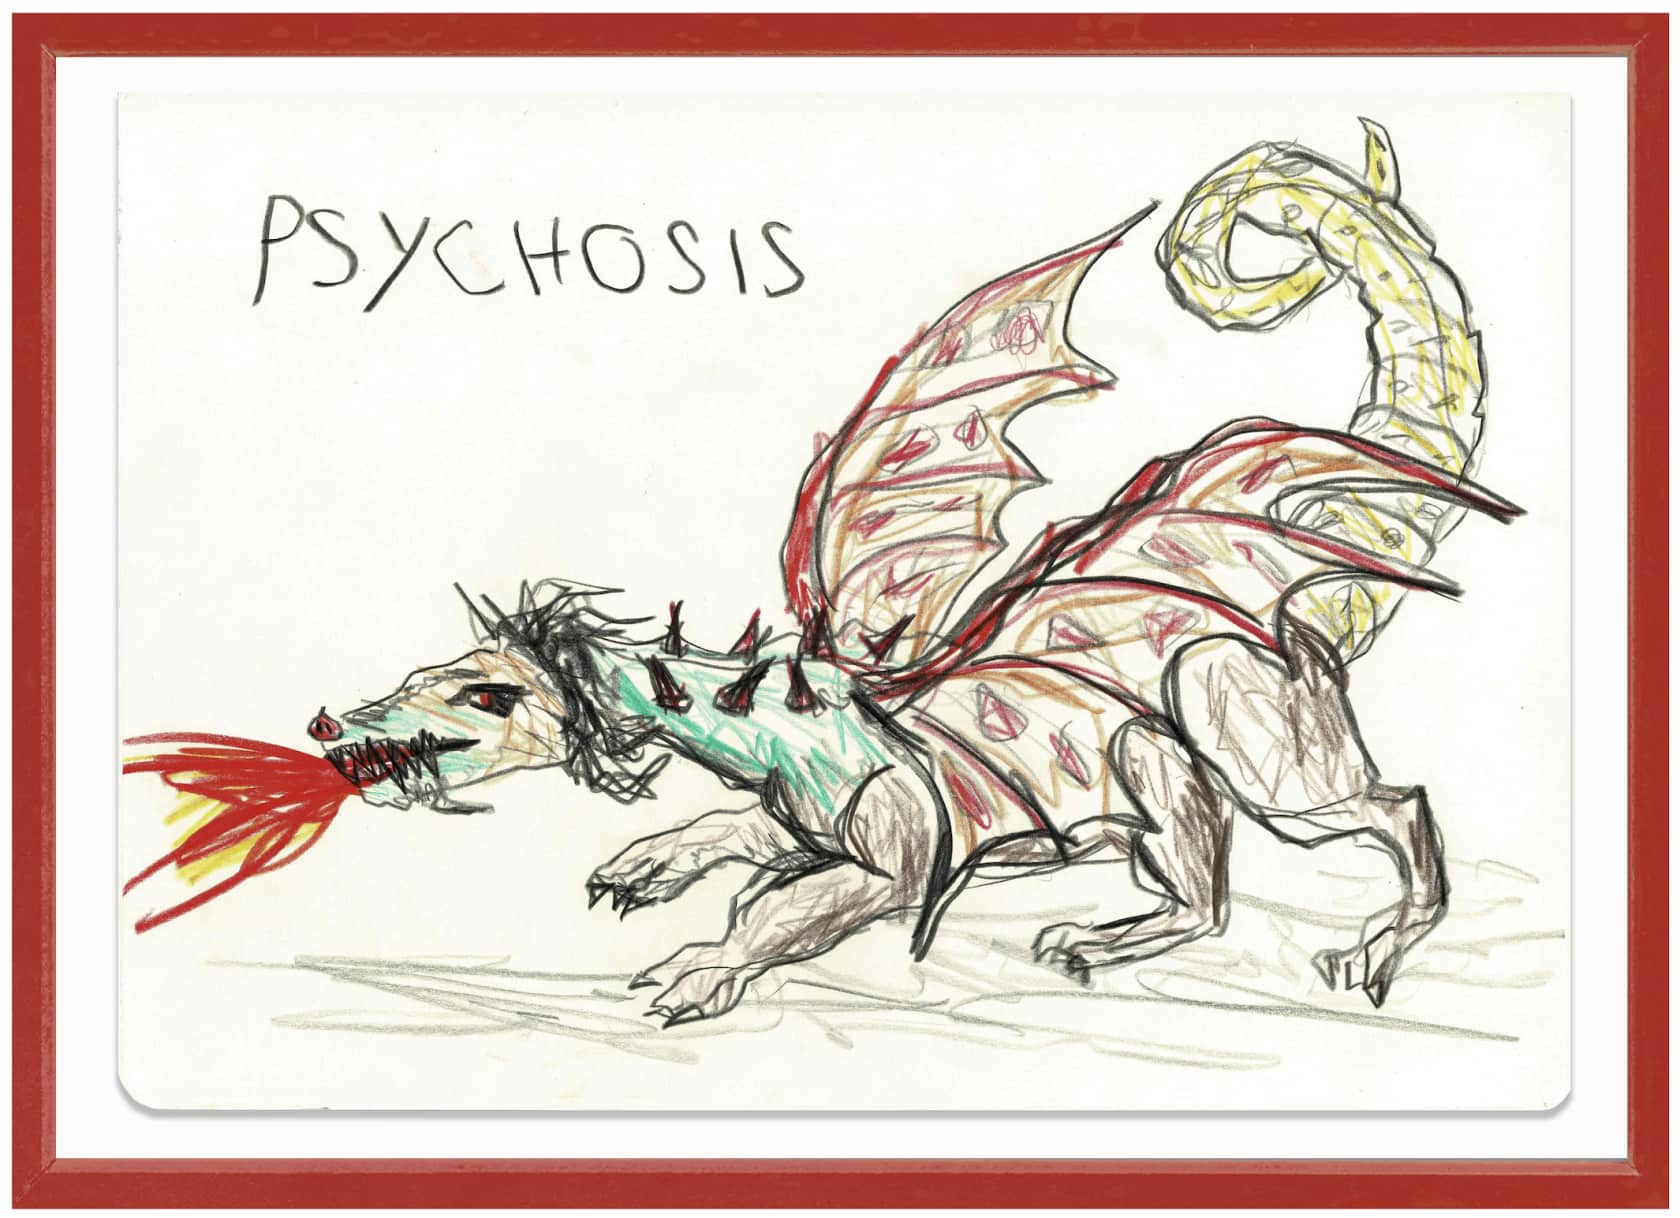 the connor brothers Psychosis Crayon on paper